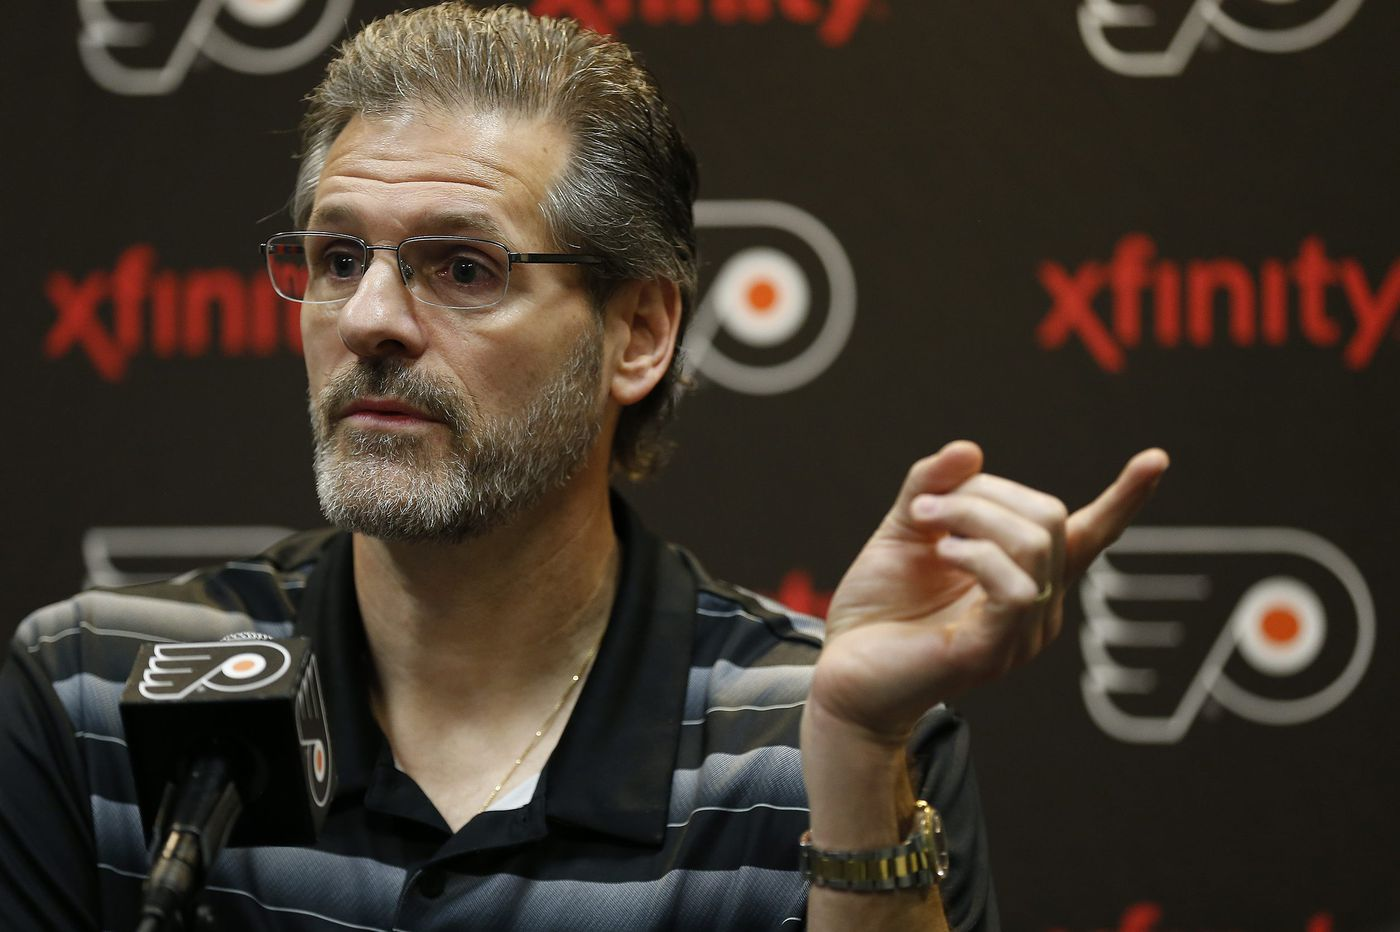 At the NHL draft, Flyers GM Ron Hextall has been at his gunslinger best